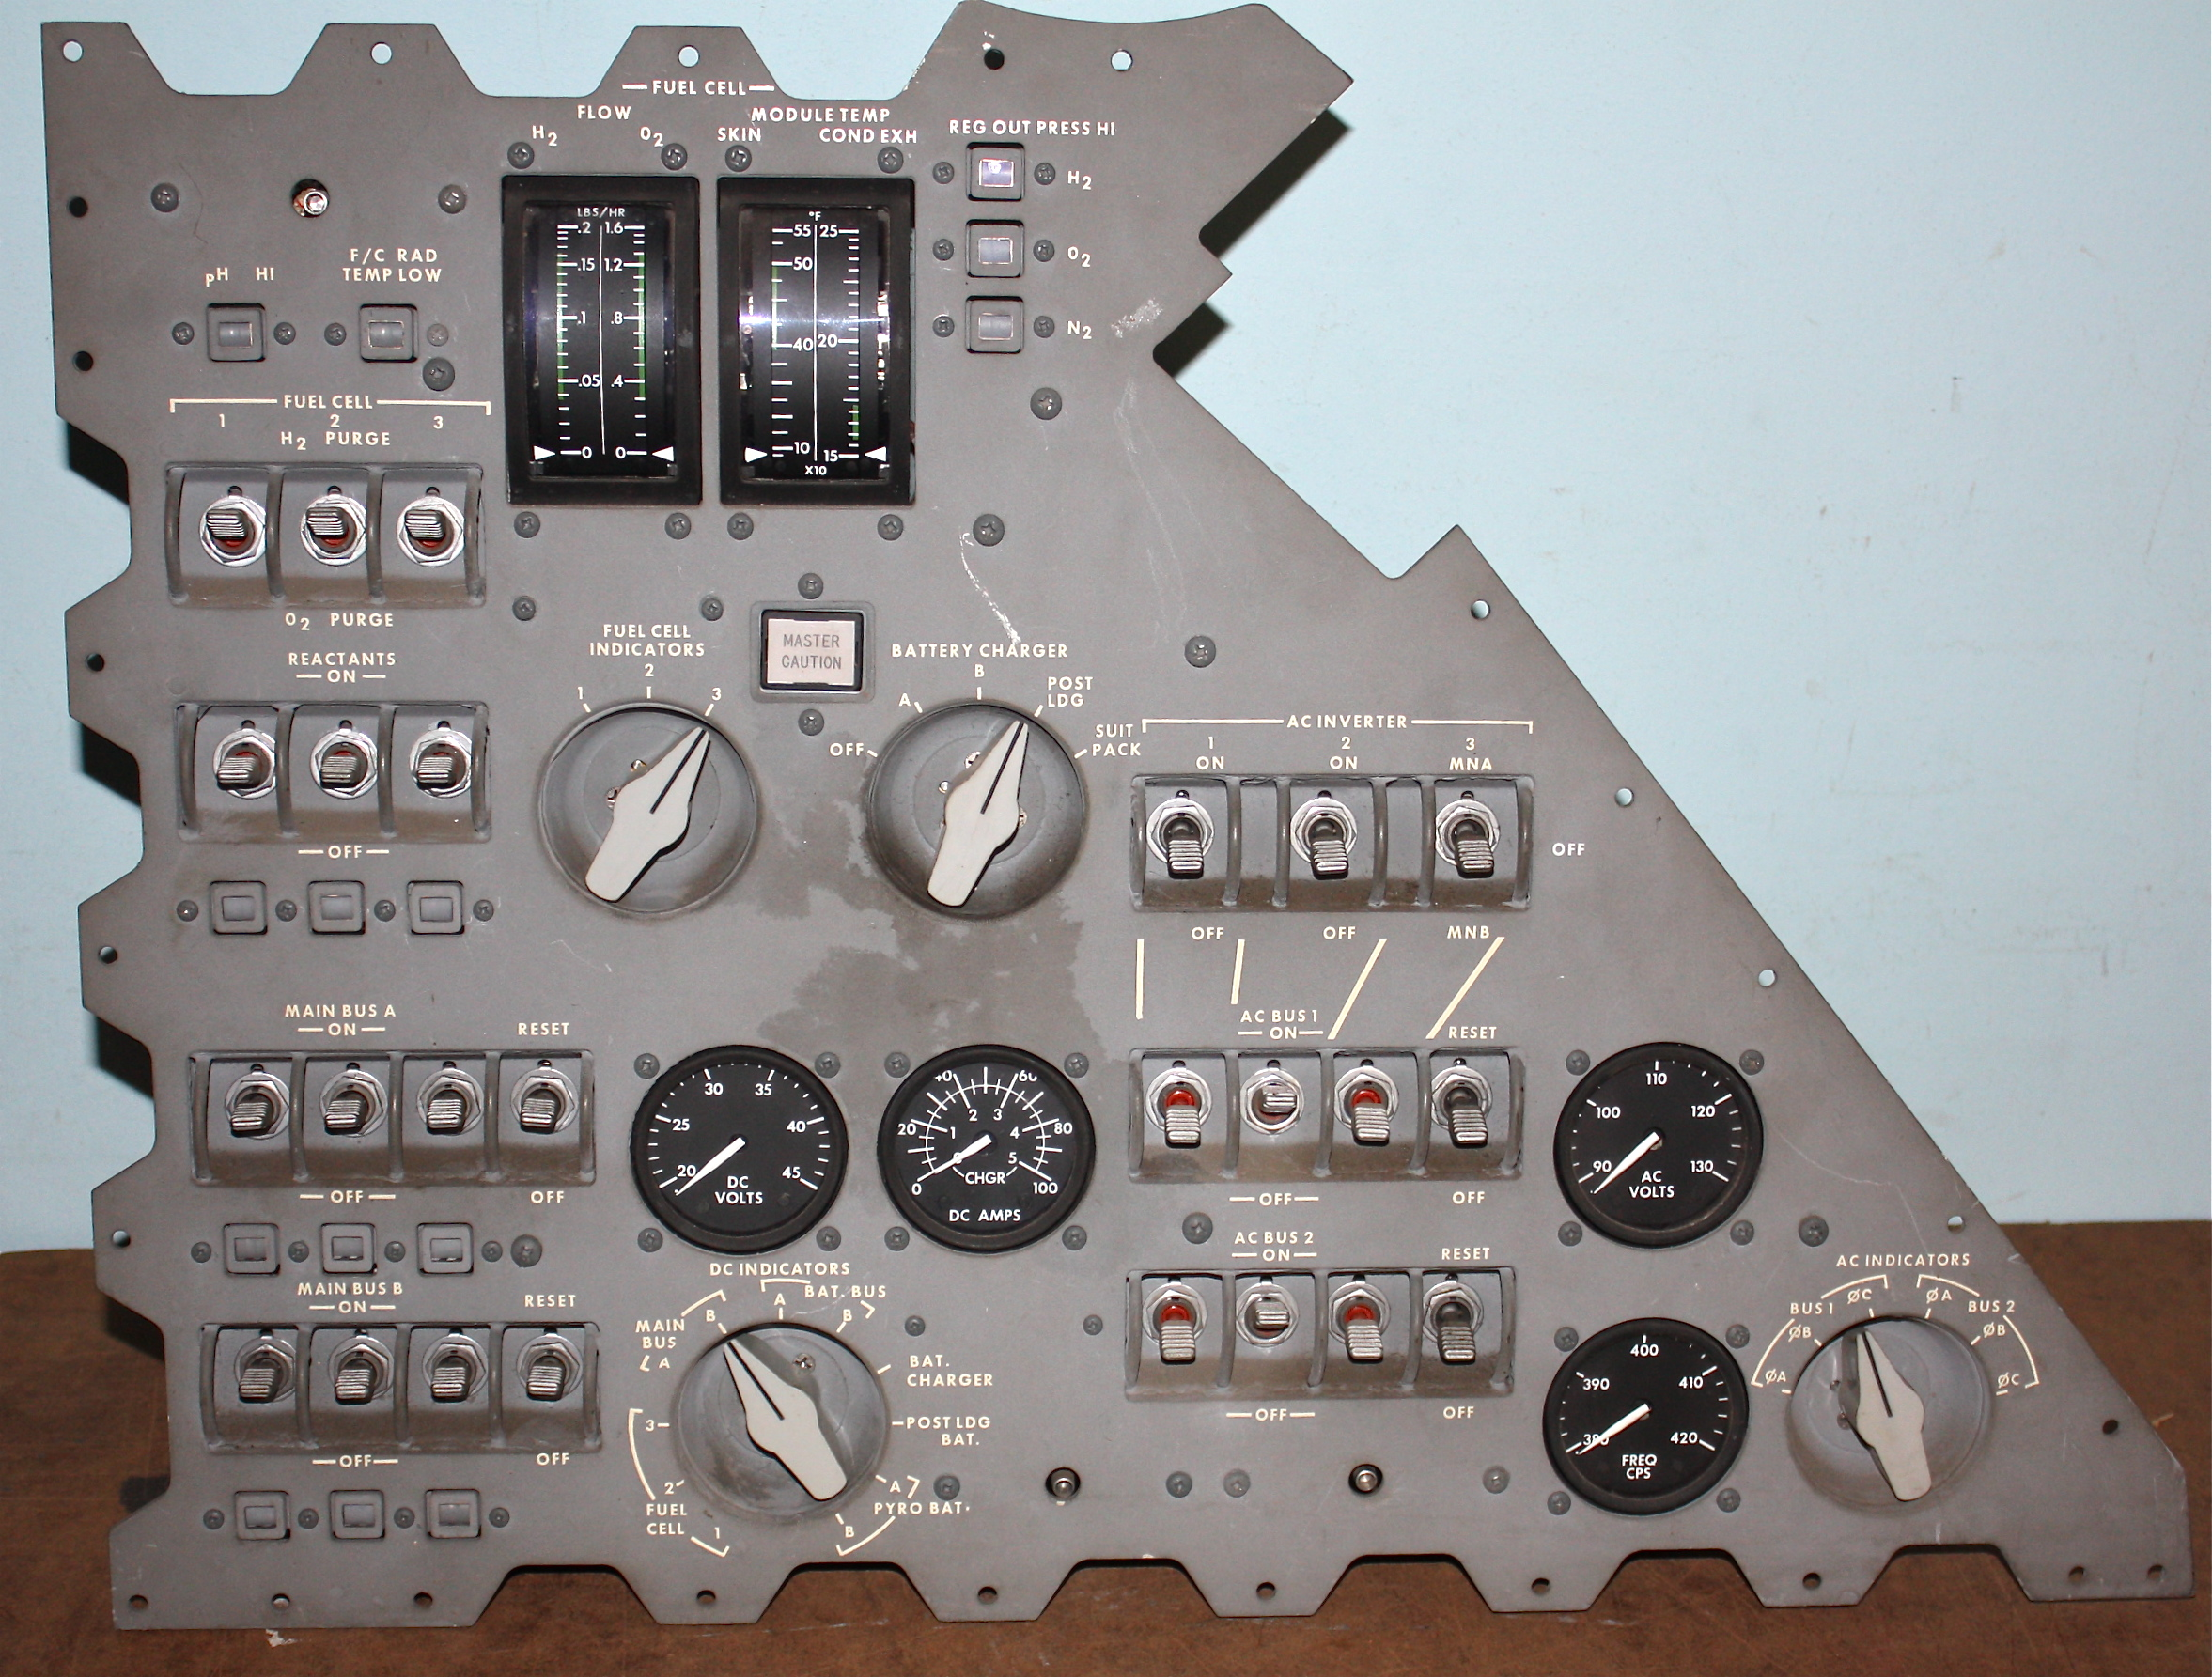 apollo capsule control panel - photo #20